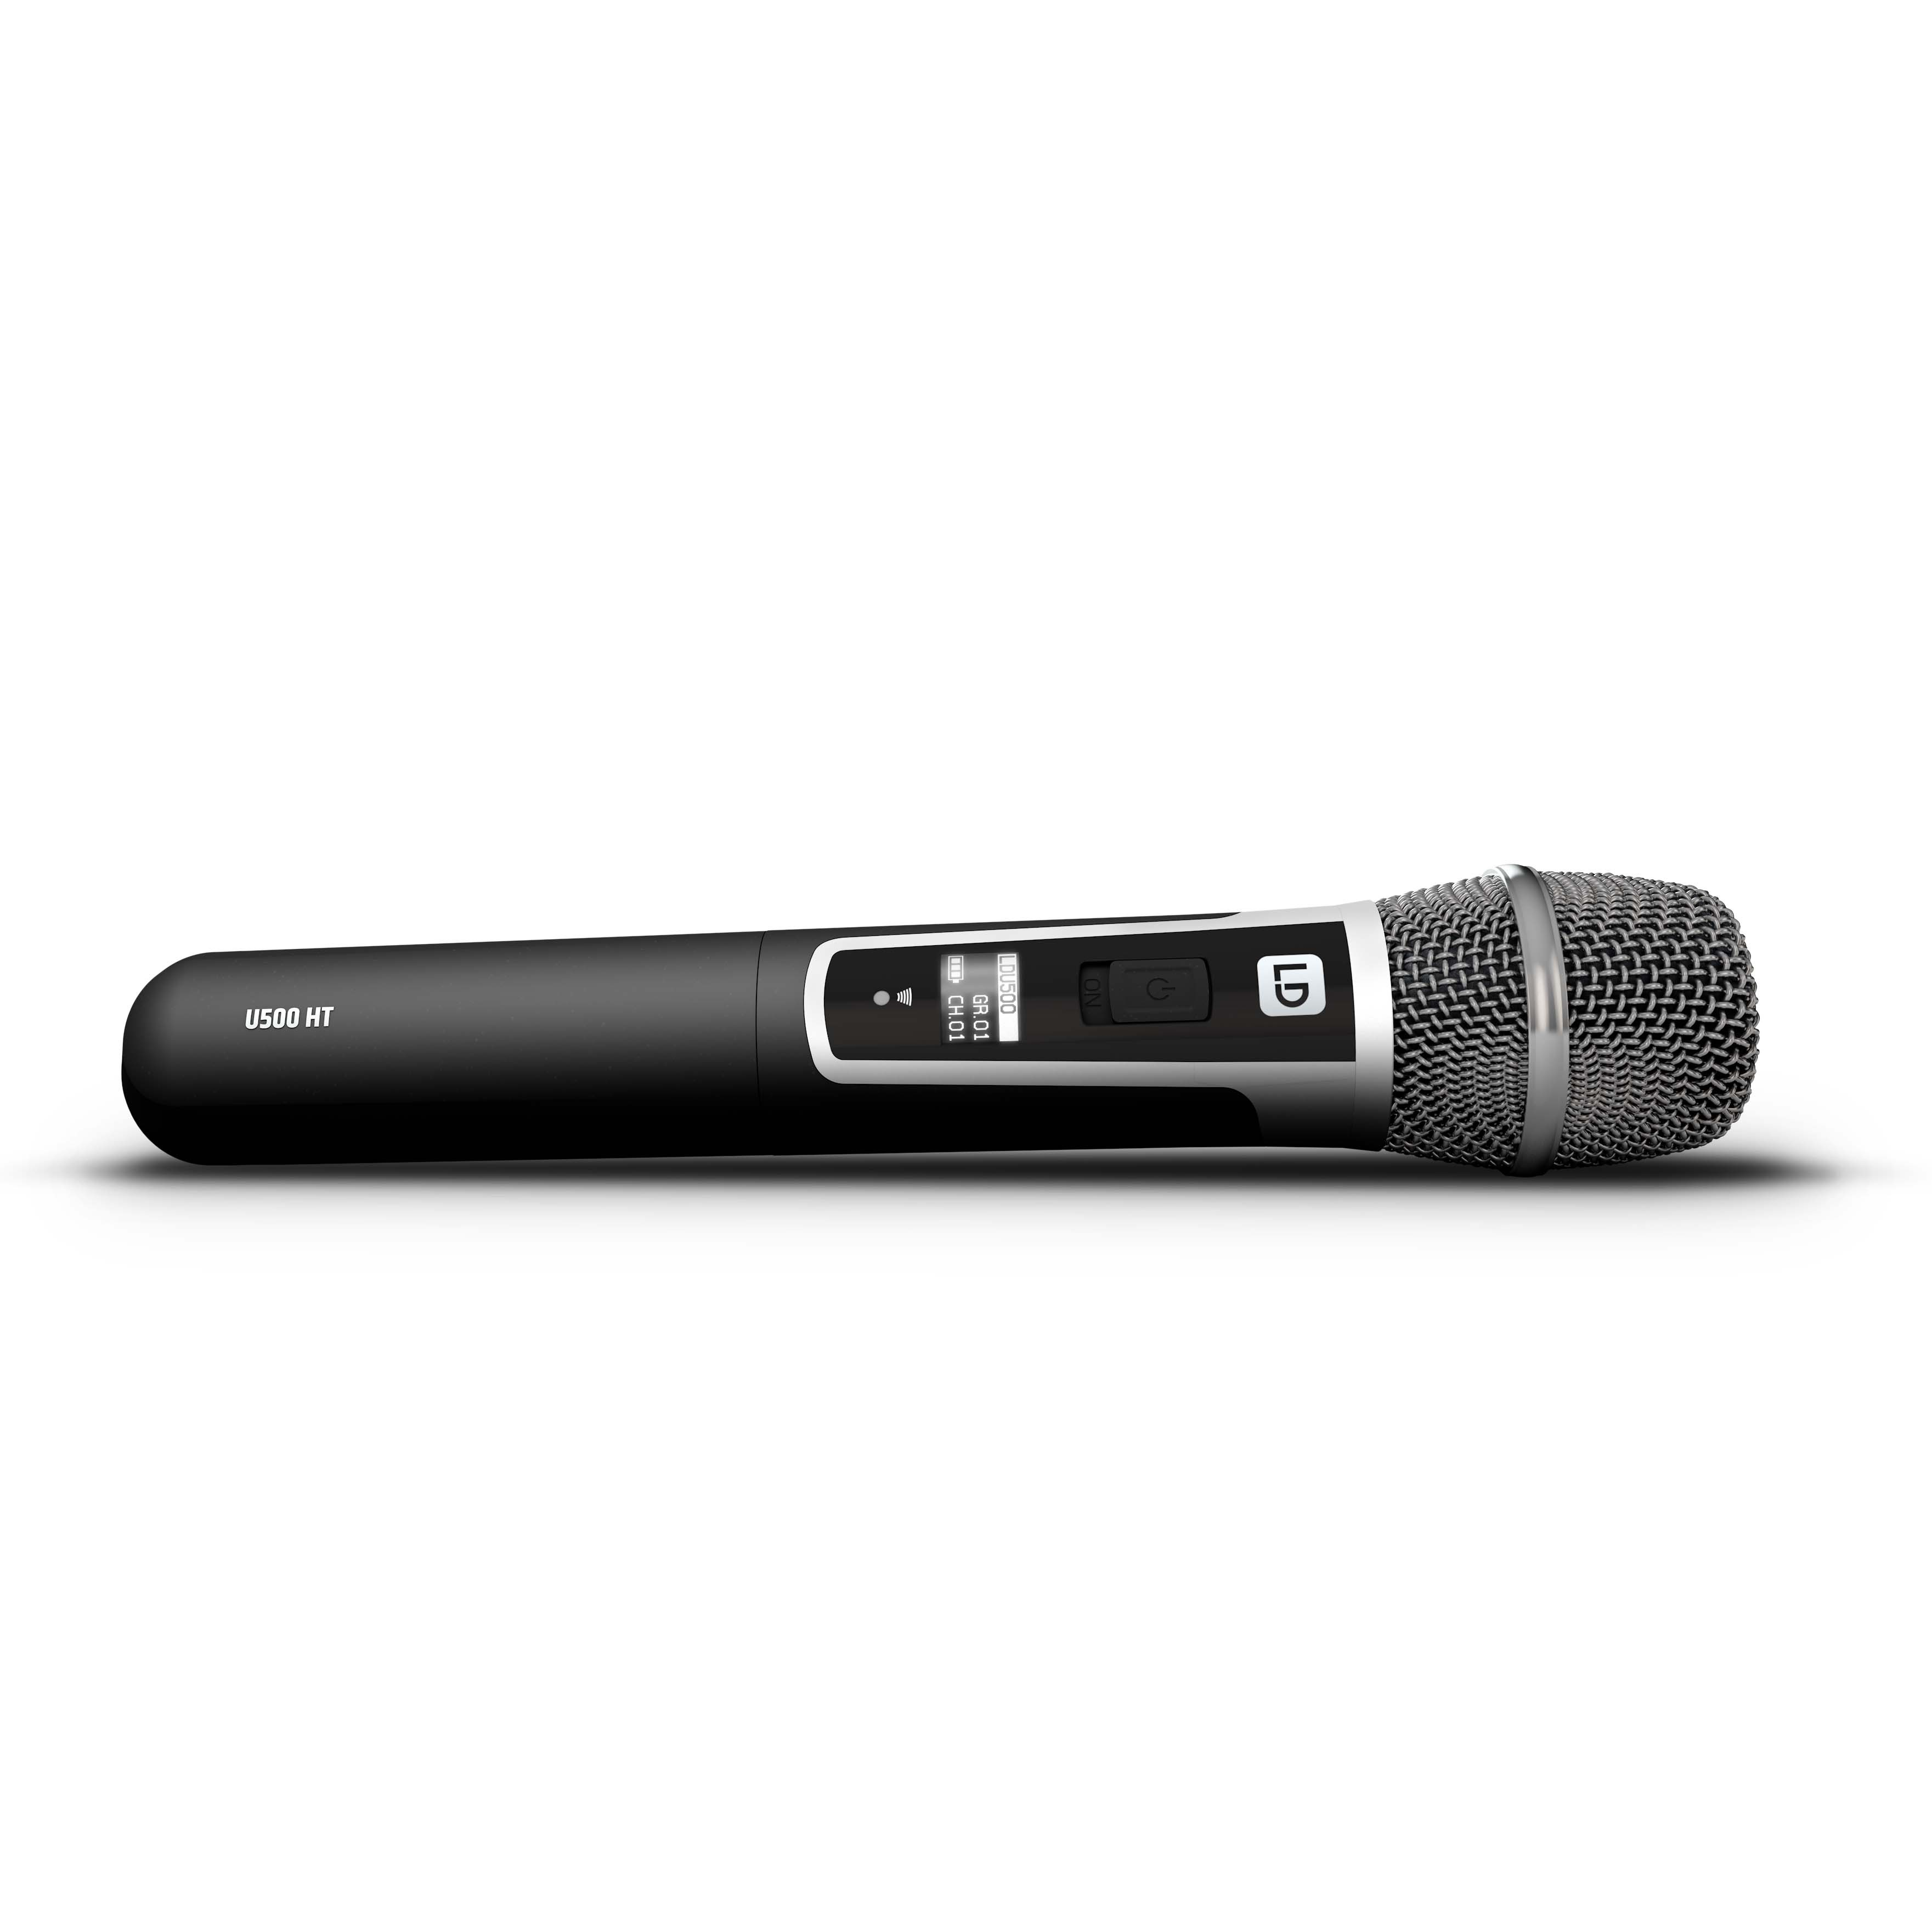 U506 UK HHC Wireless Microphone System with Condenser Handheld Microphone